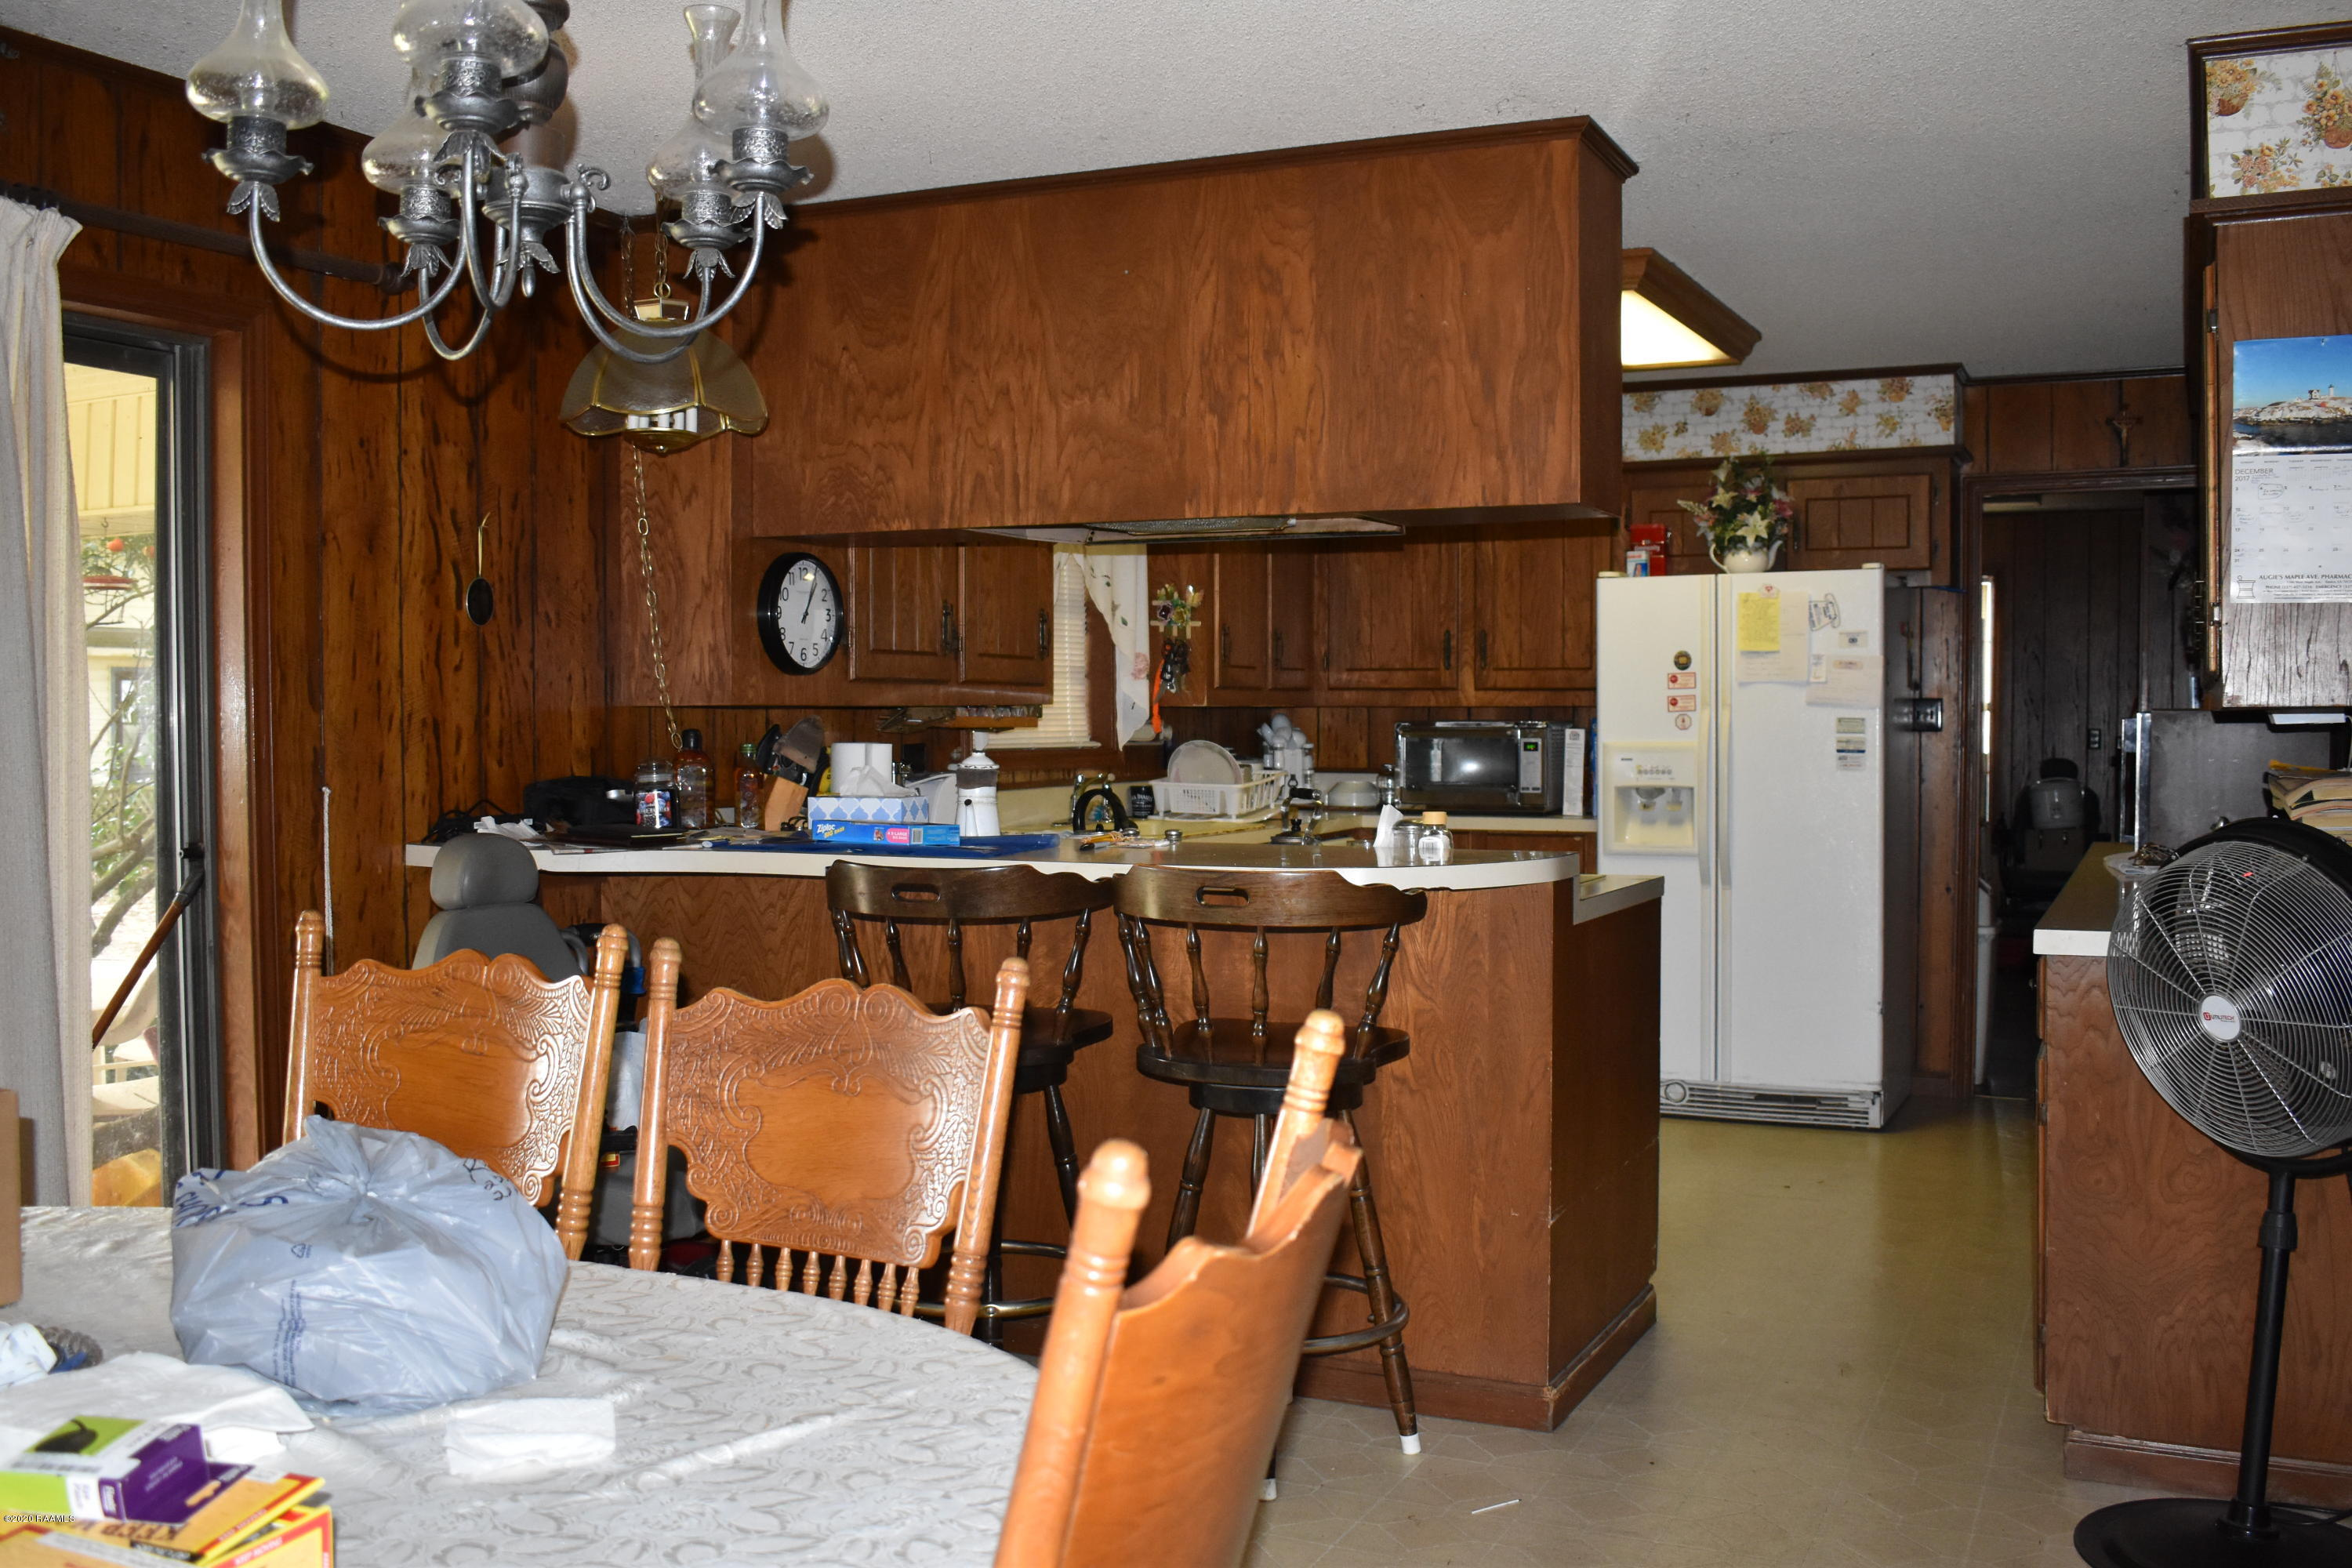 655 Saddle Drive, Eunice, LA 70535 Photo #6